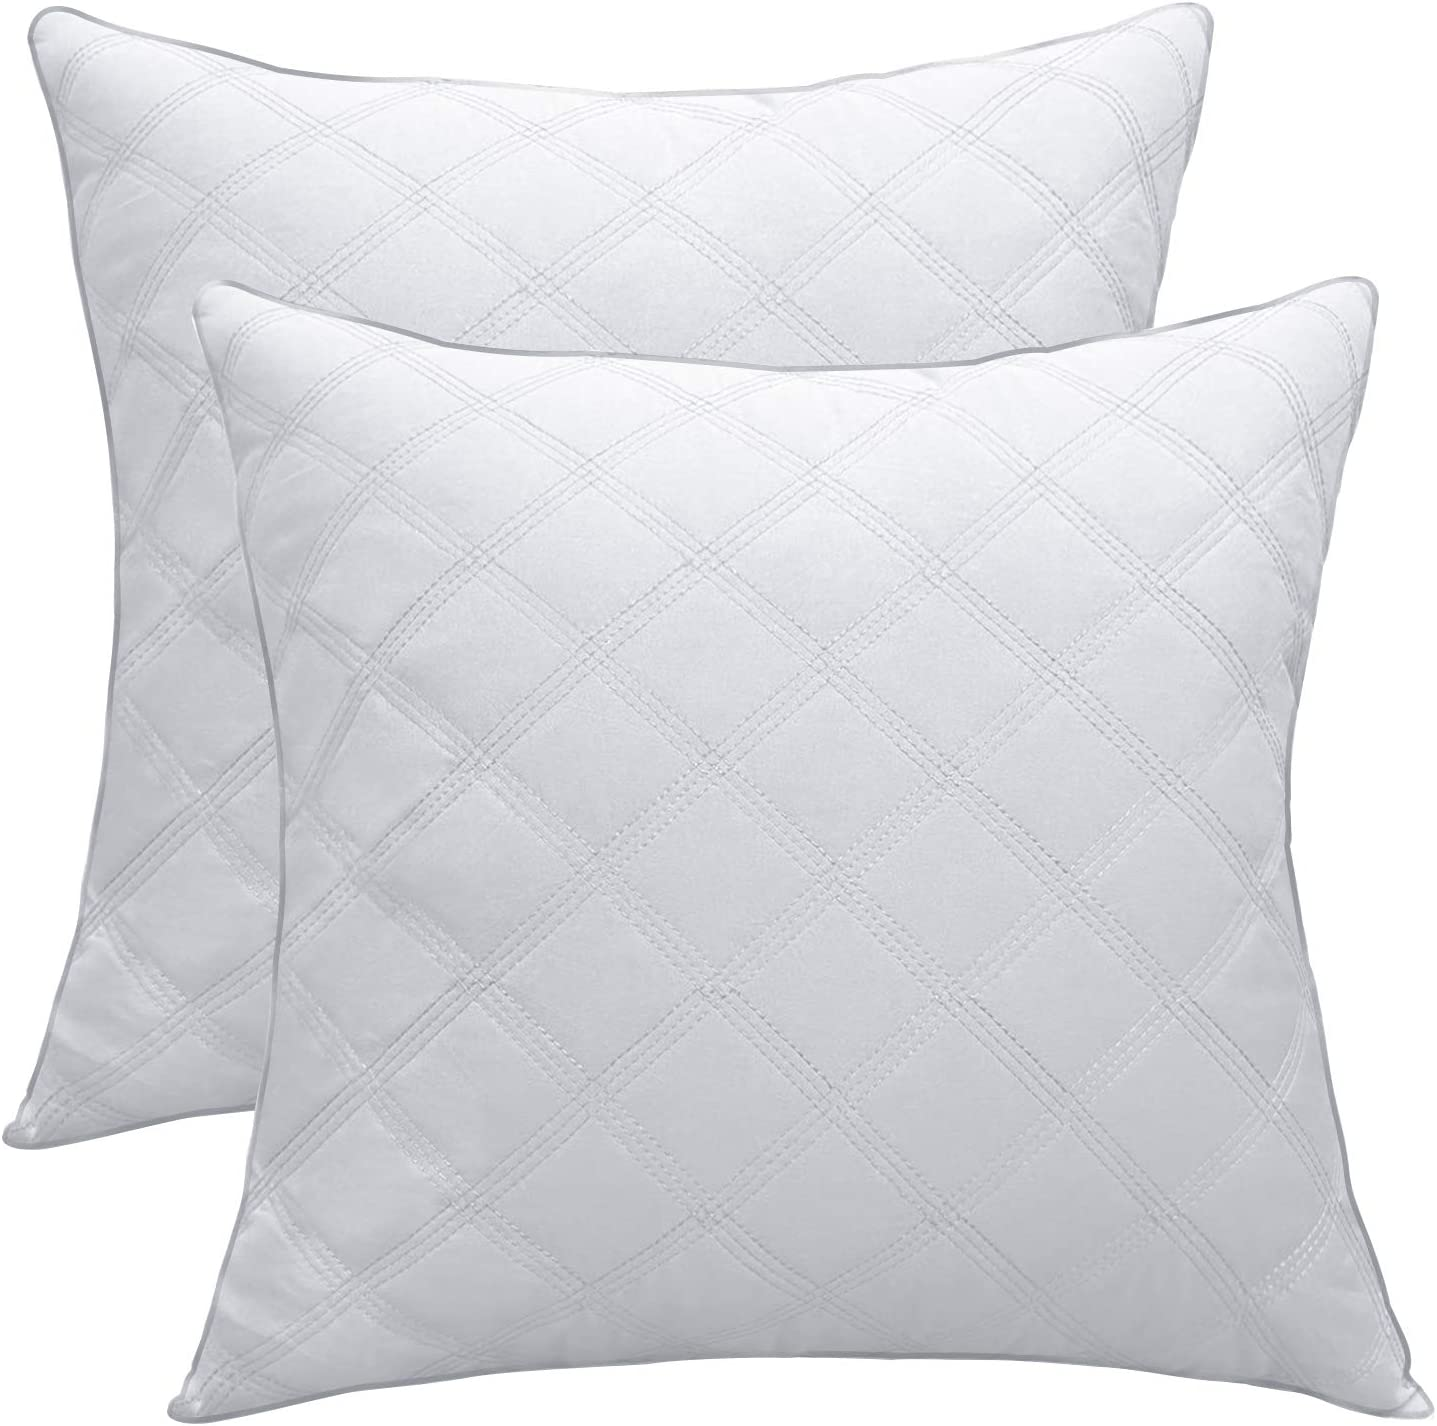 New product Lipo 20x20 Pillow Inserts Quilted- Set Filling OFFicial shop 2 Up 680GR of to